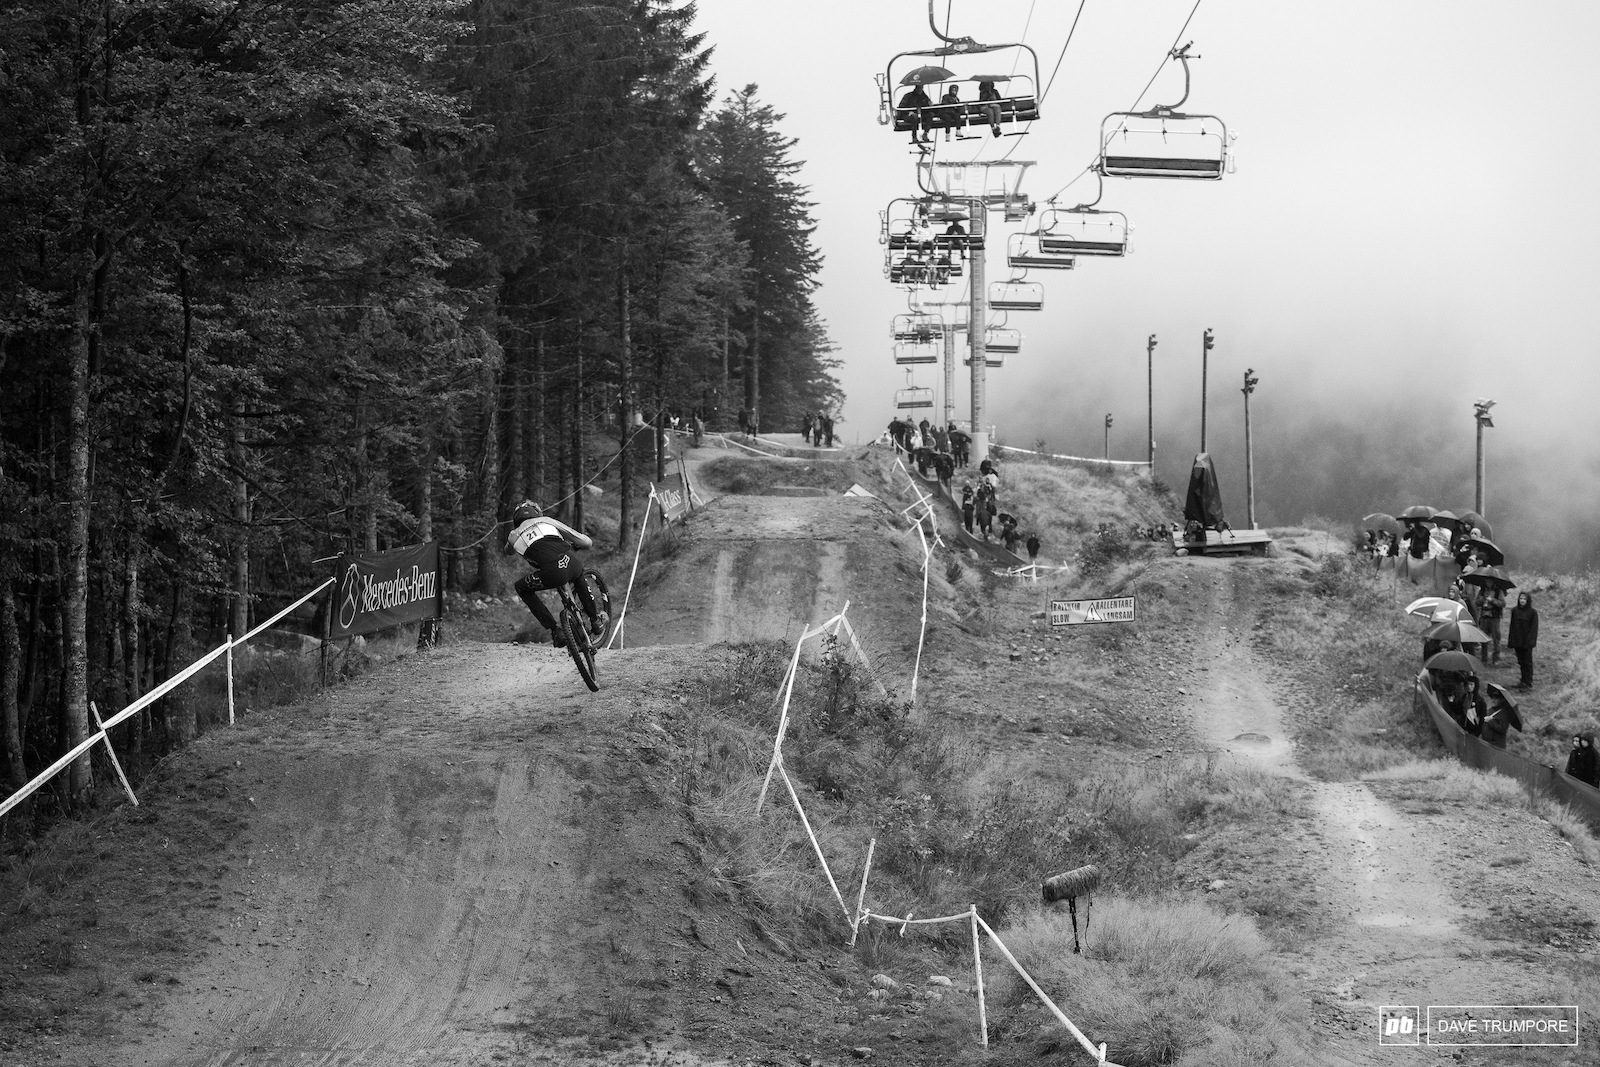 The last race runs of the 2018 World Cup DH season got underway in some fog and cold rain.